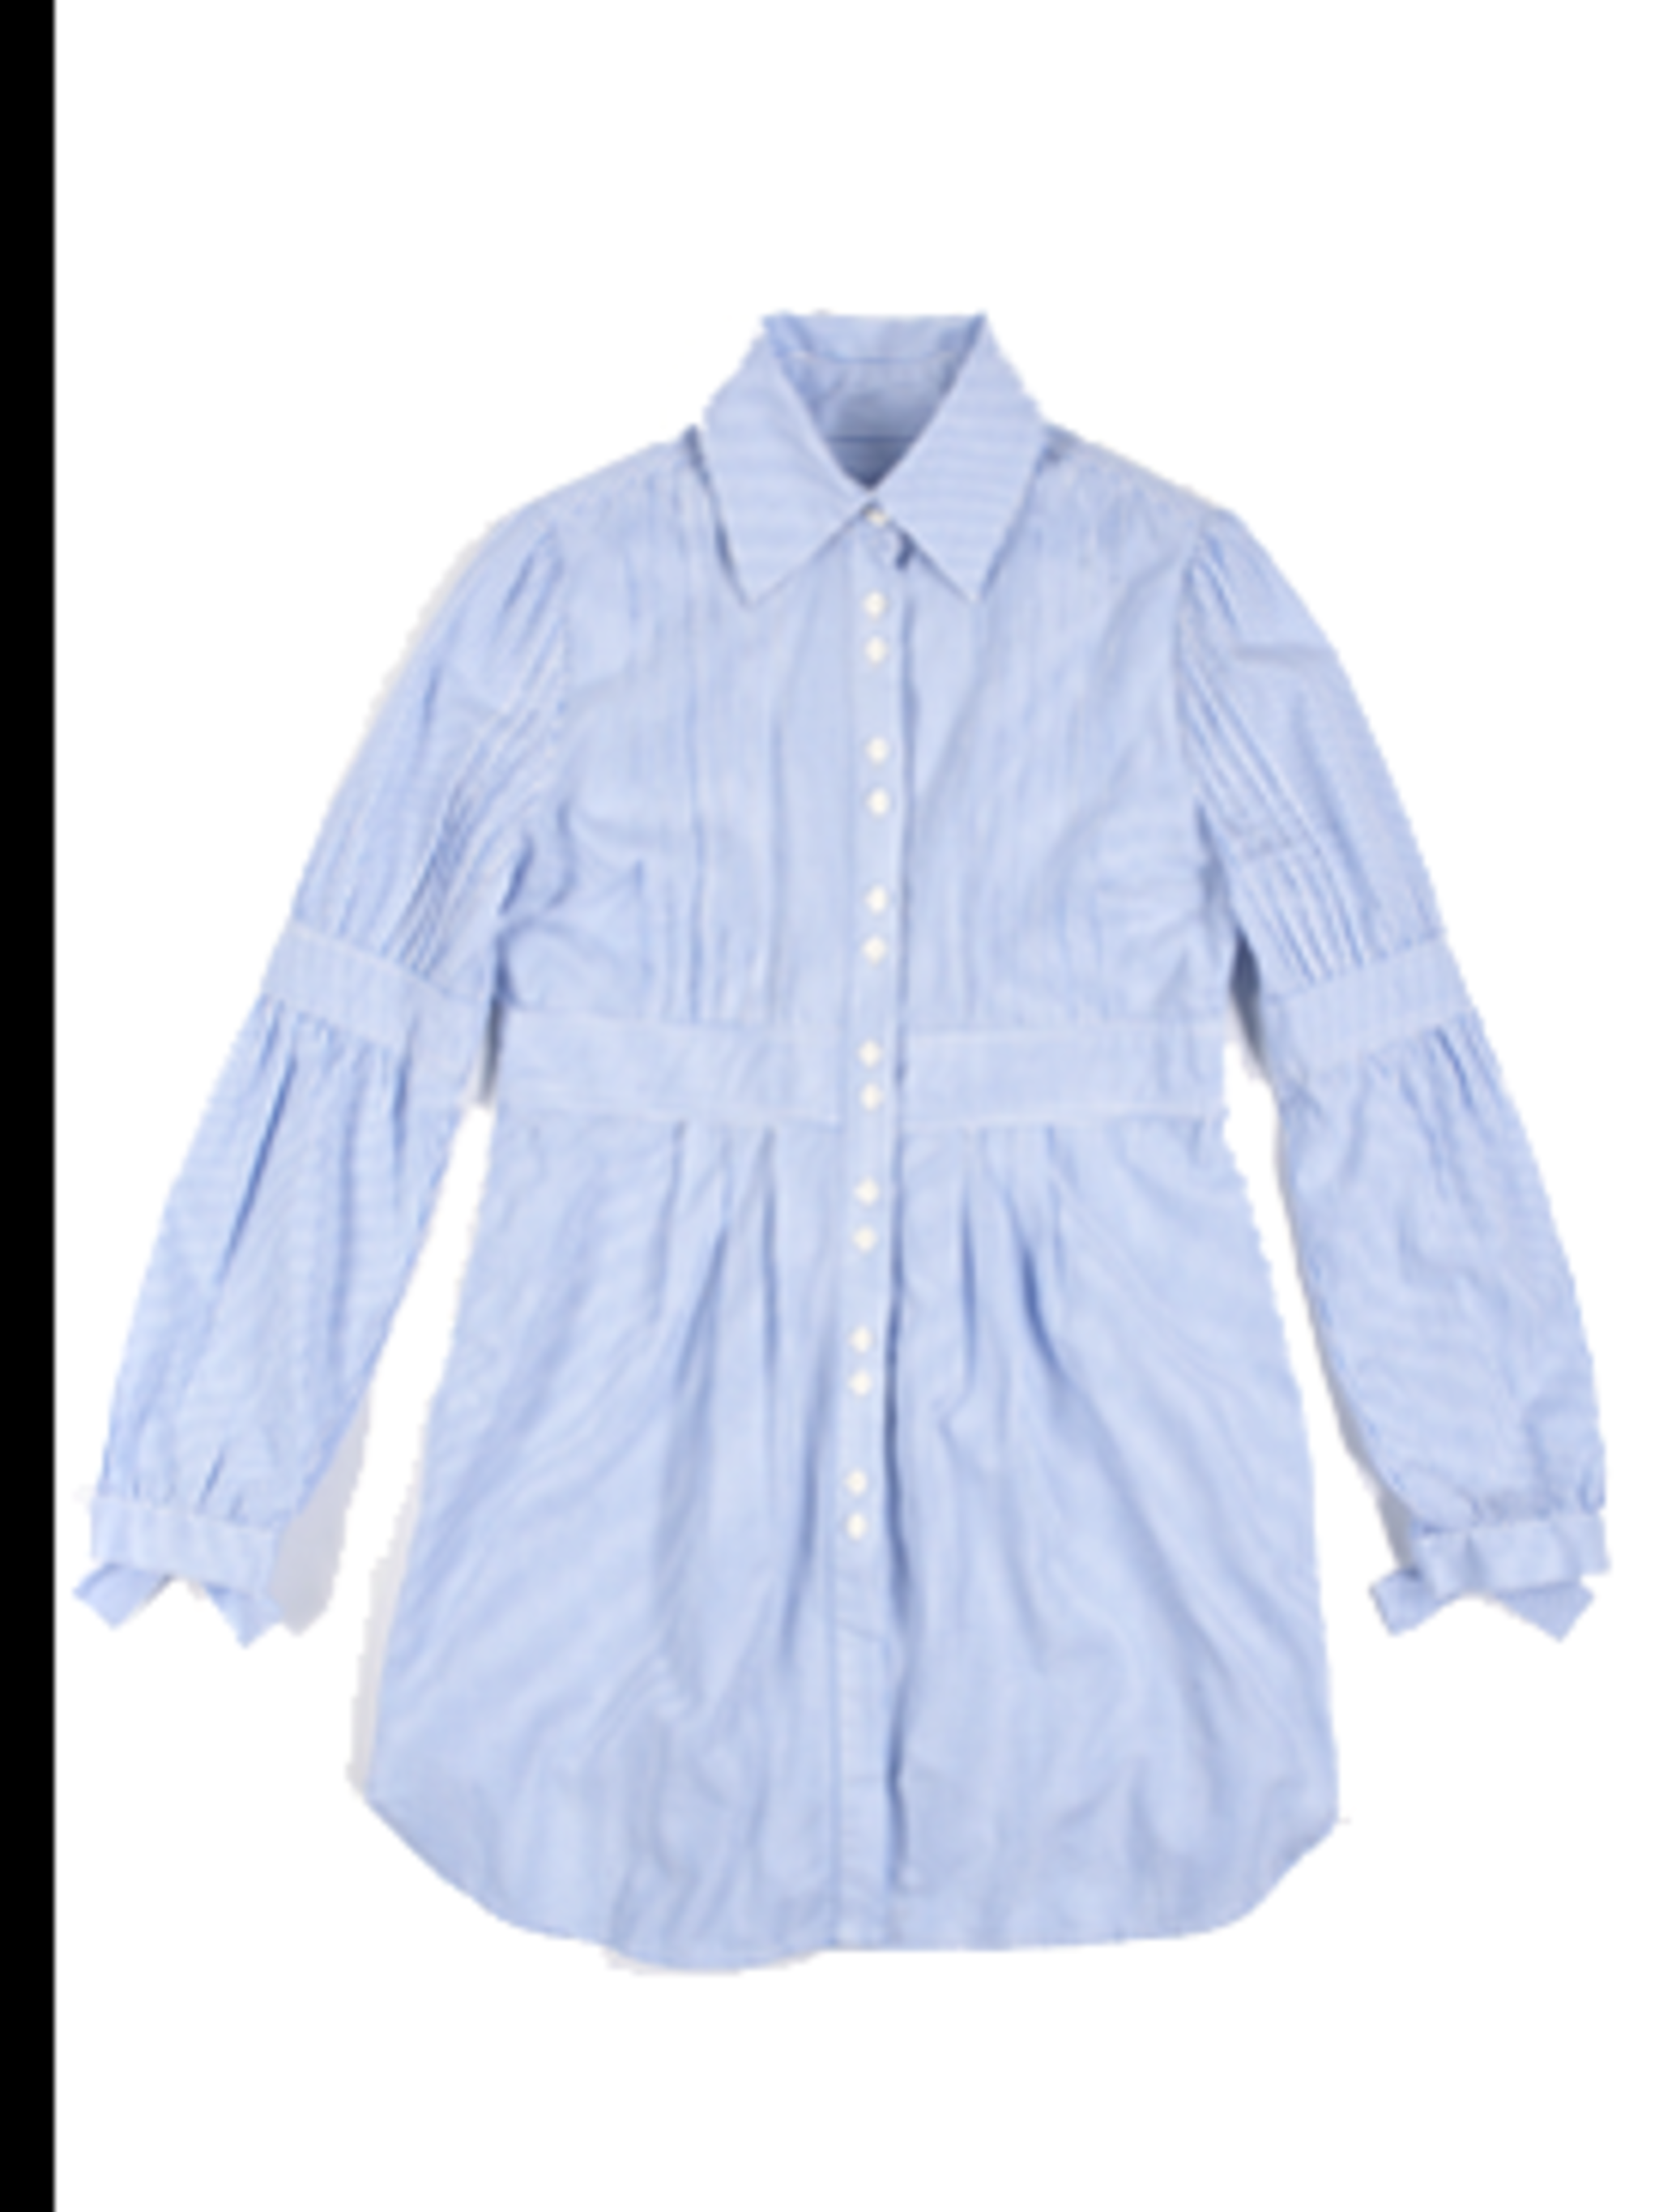 <p>Stripe shirt dress, £85 from Ted Baker for stockists call 0845 130 4278</p>